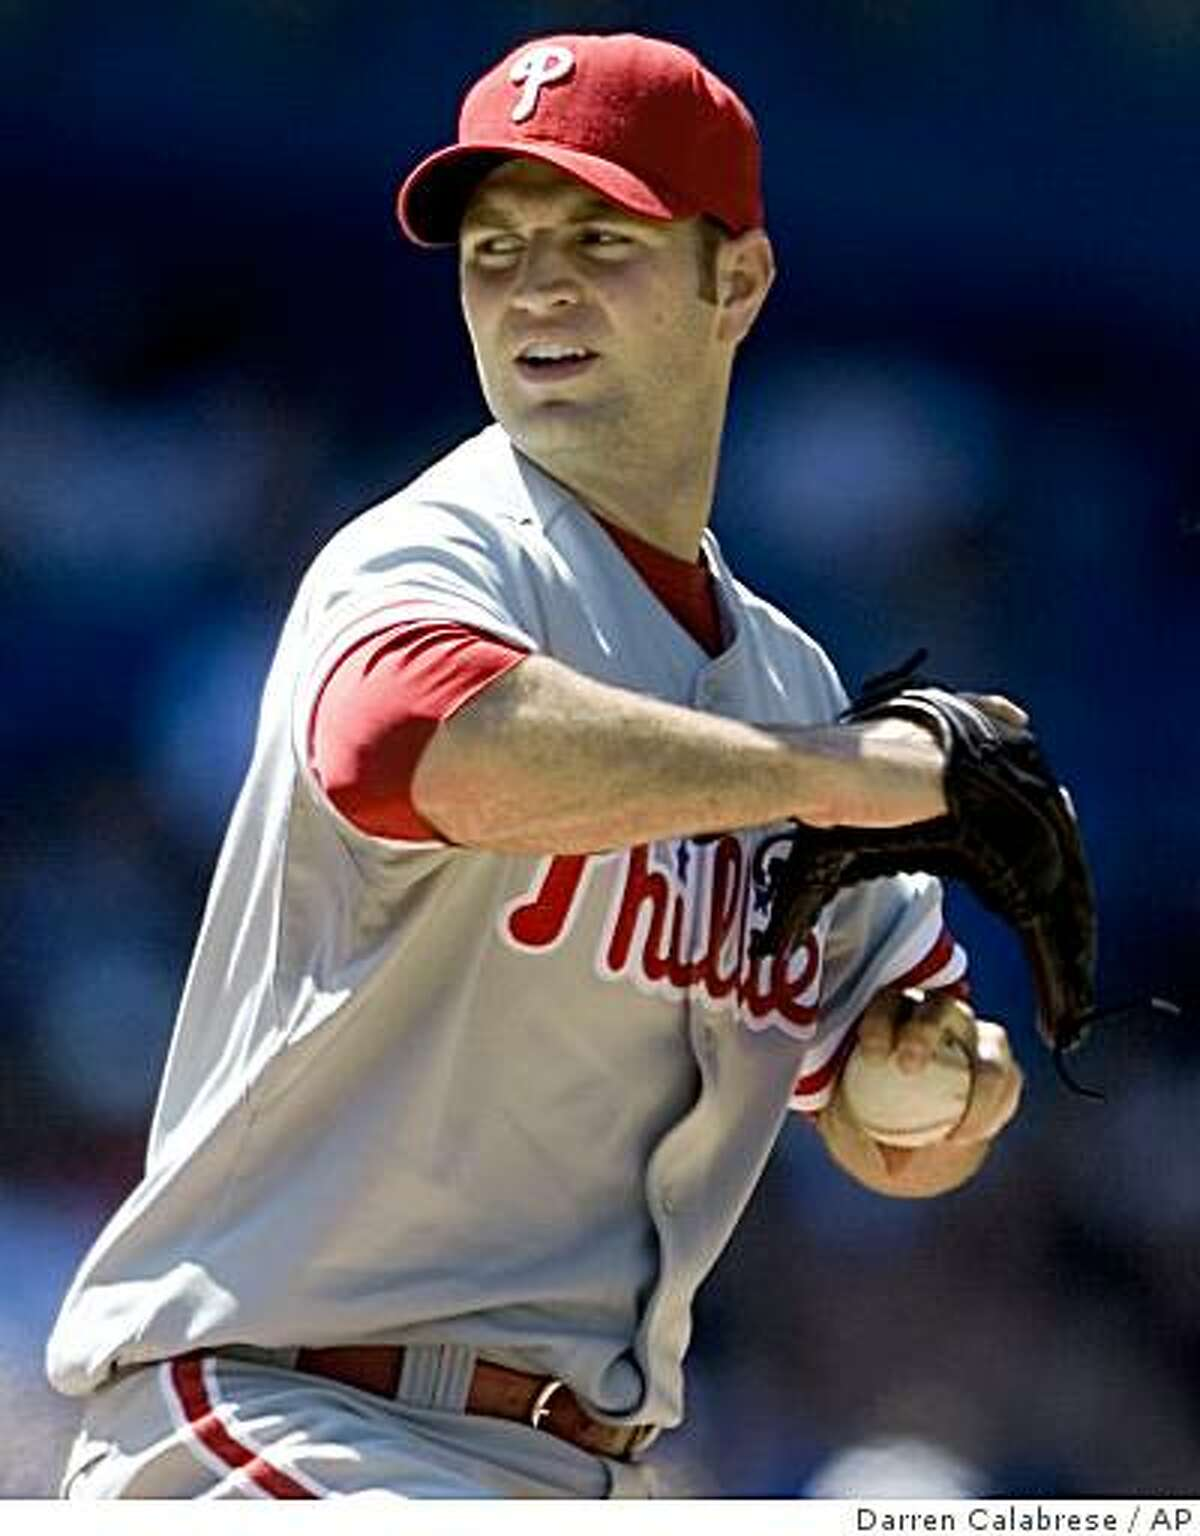 Philadelphia Phillies pitcher J. A. Happ pitches against the Toronto Blue Jays during ninth-inning baseball action in Toronto on Saturday, June 27, 2009. (AP Photo/The Canadian Press, Darren Calabrese)